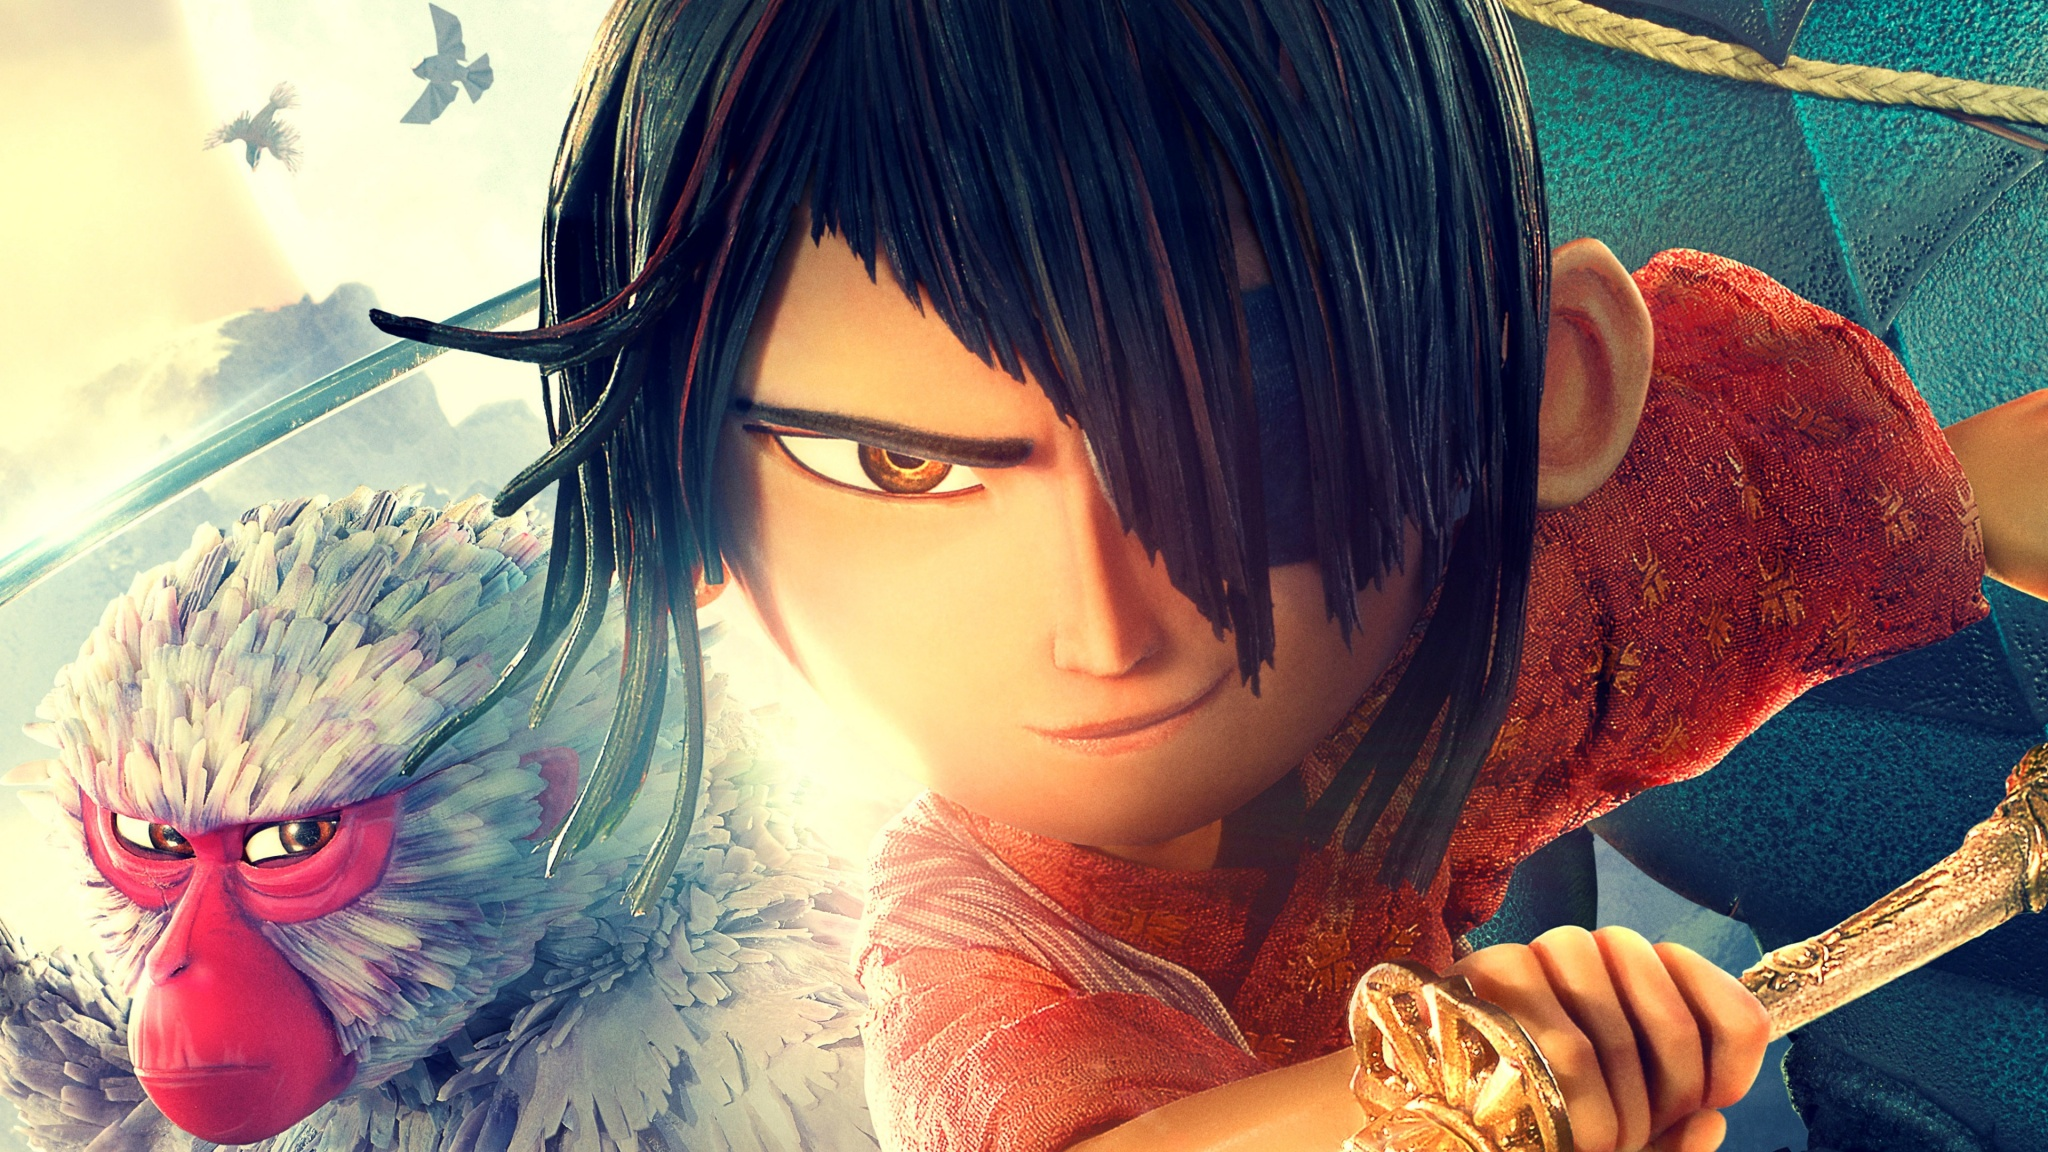 Kubo And The Two Strings 4k Wallpapers 2048x1152 994055